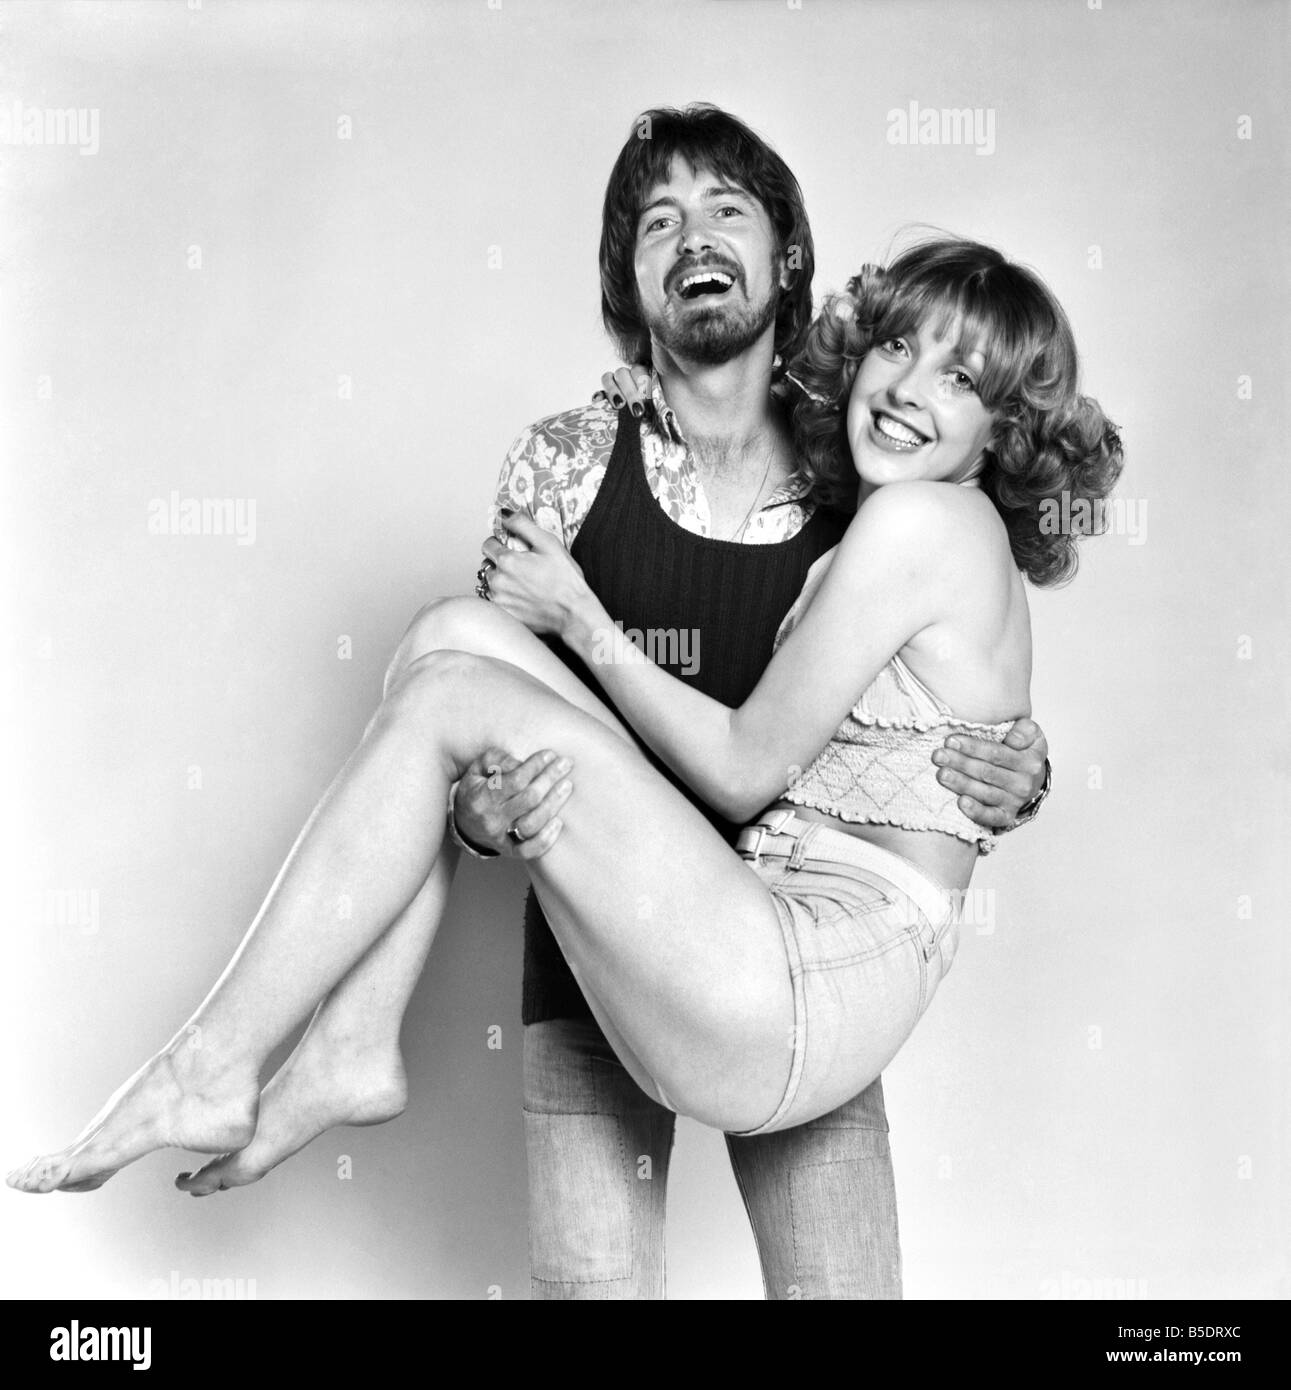 Couple wearing 1970 fashion. La femme portant un top et short avec l'homme portant une chemise à motifs Photo Stock